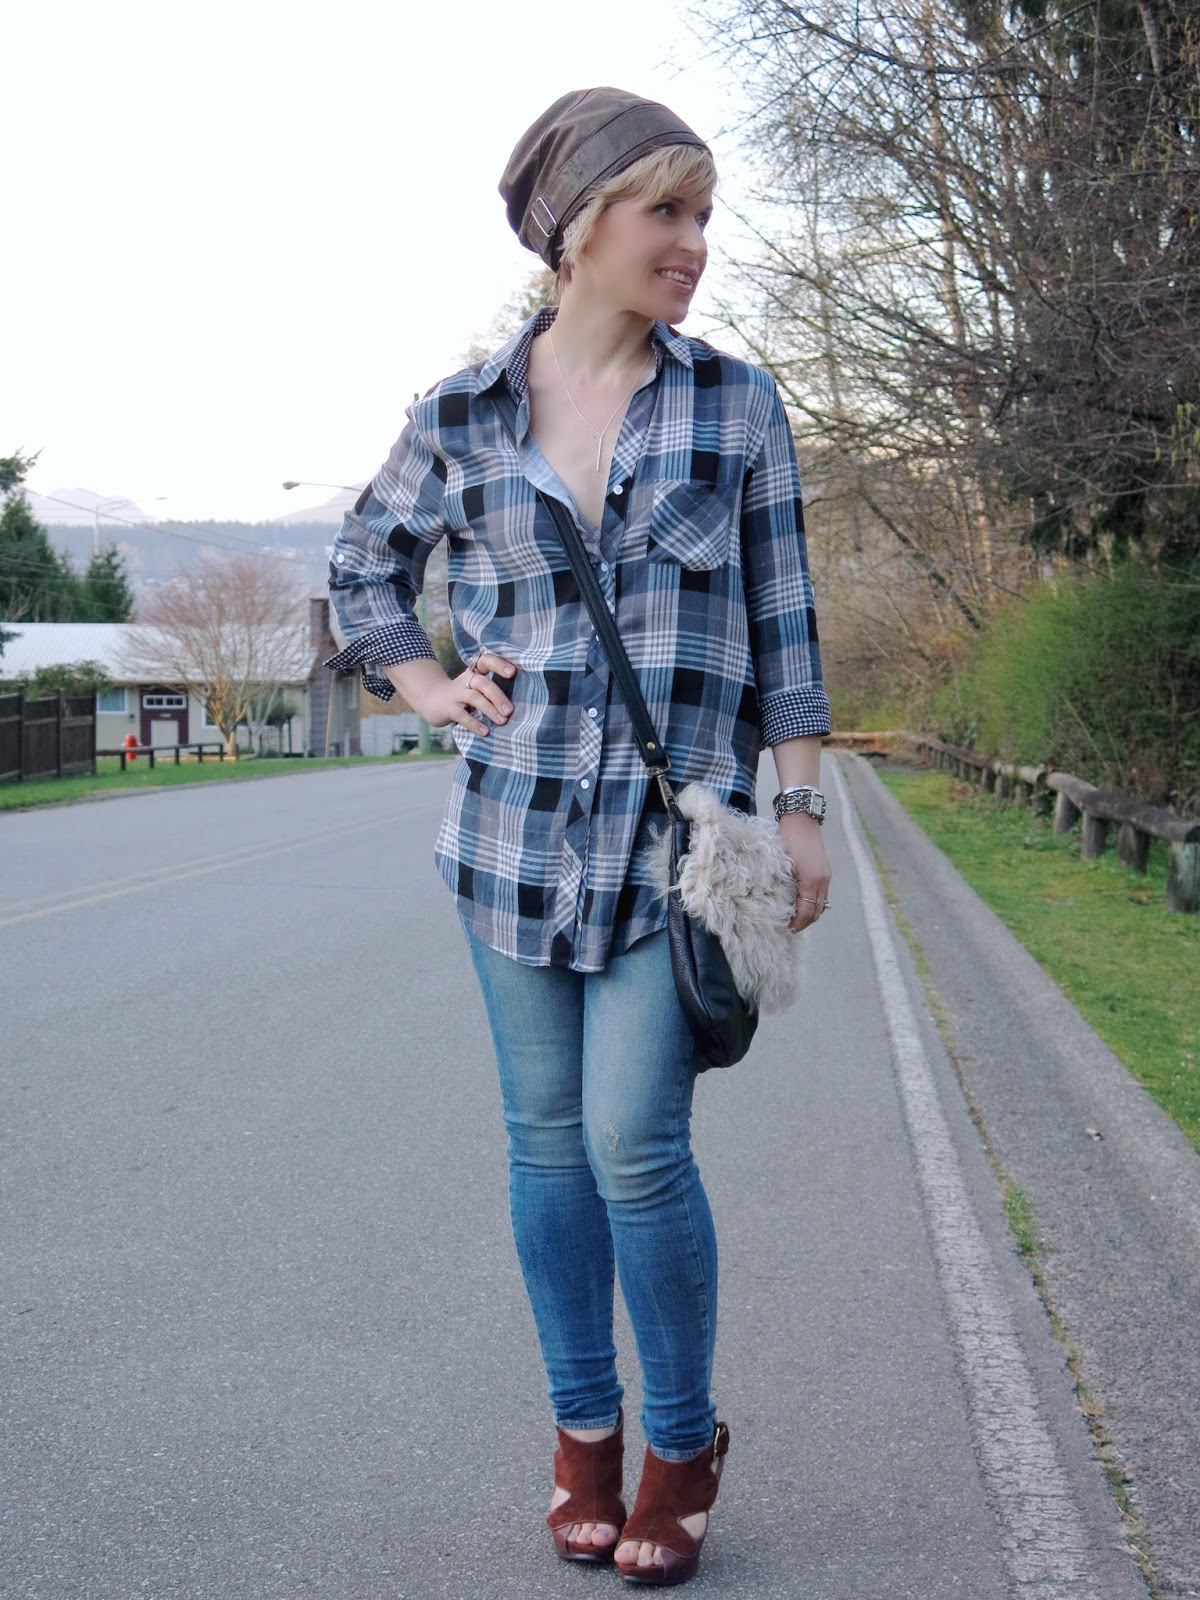 styling a plaid shirt and skinny jeans